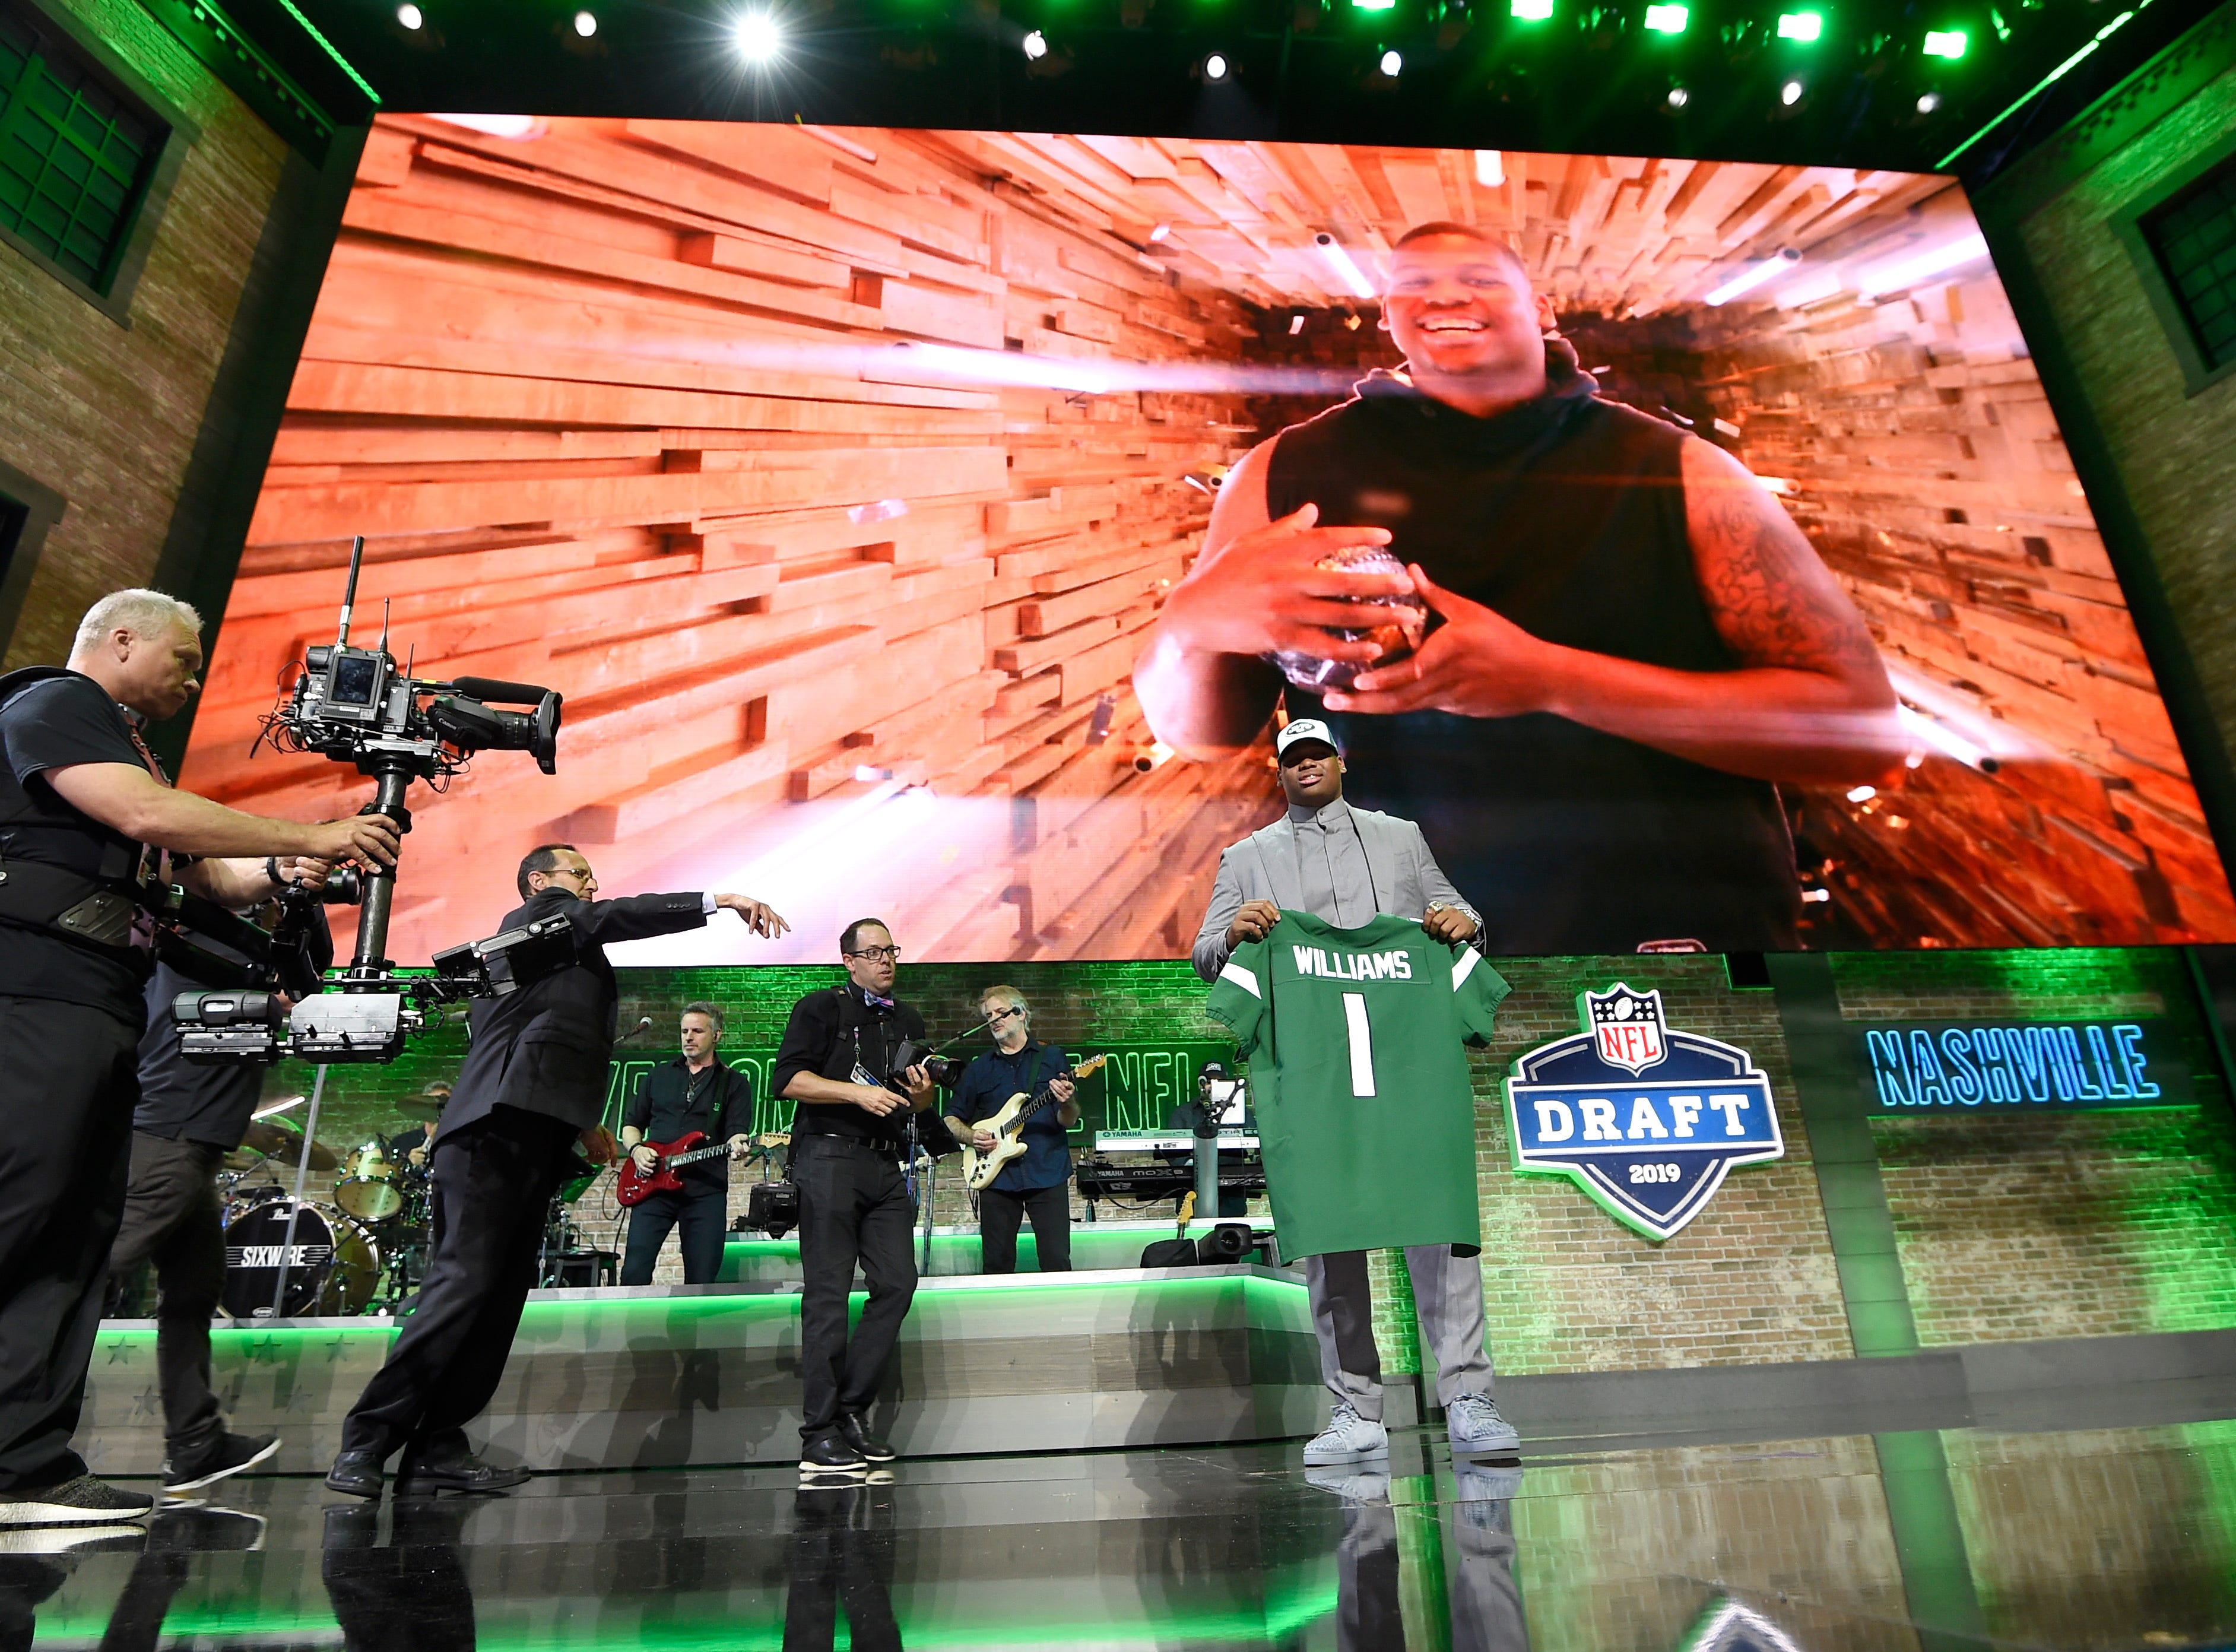 Quinnen WIlliams holds his new New York Jets jersey after being picked during the first round of the NFL Draft Thursday, April 25, 2019, in Nashville, Tenn.